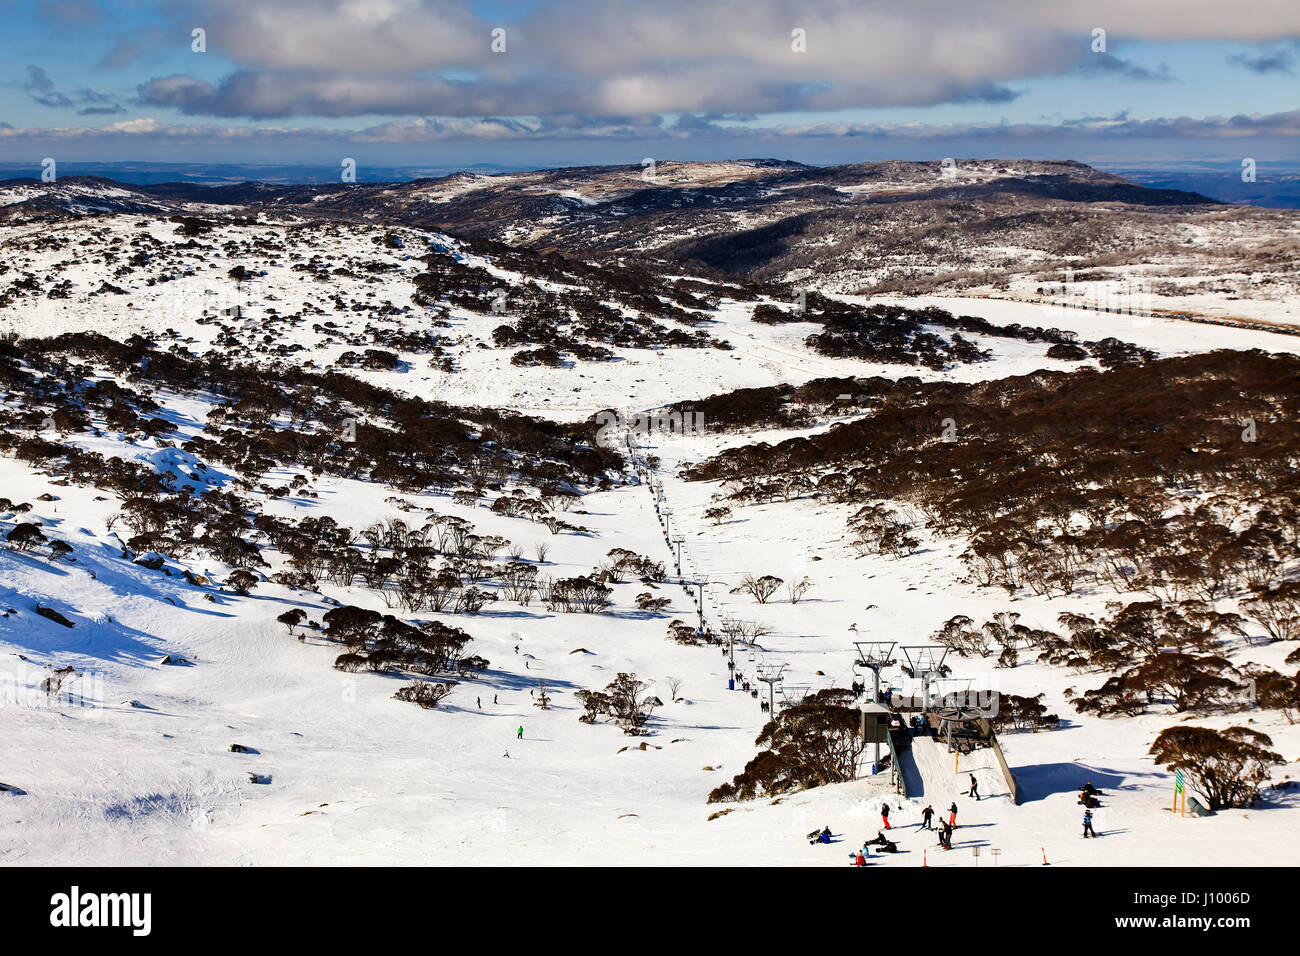 Elevated view on Perisher valley ski resort, cableway and relaxing skiers with snowboaders at high winter skiing - Stock Image